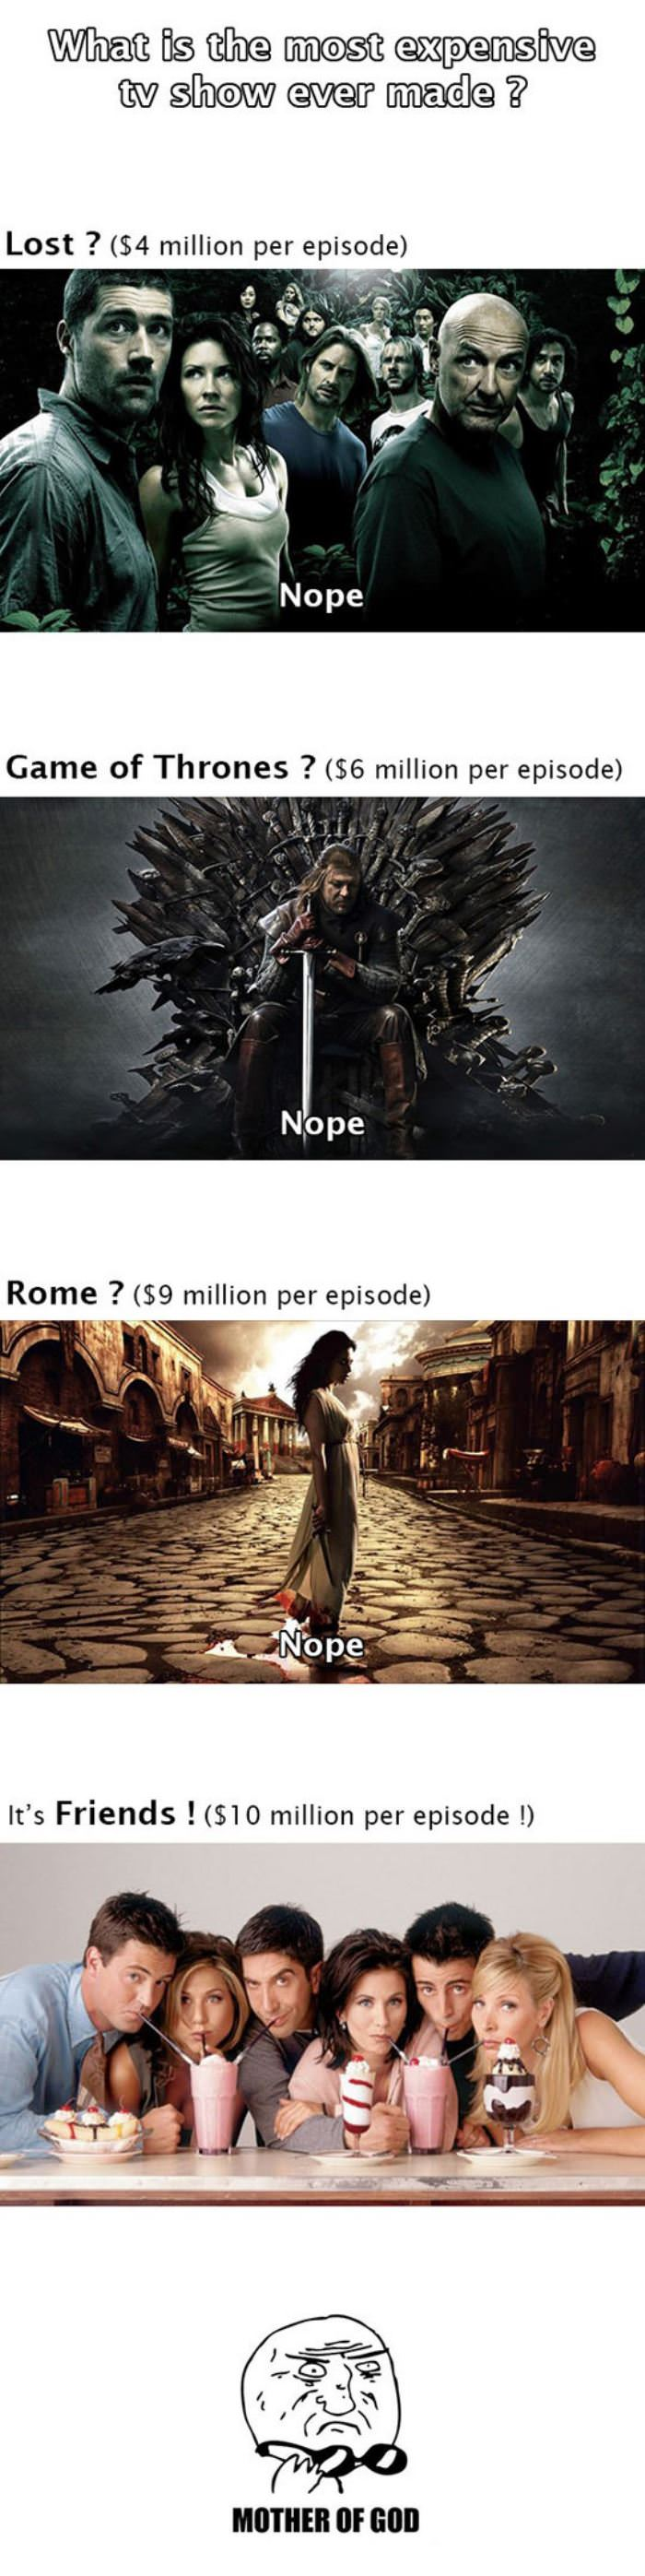 Most Expensive Tv Series Ever Made History